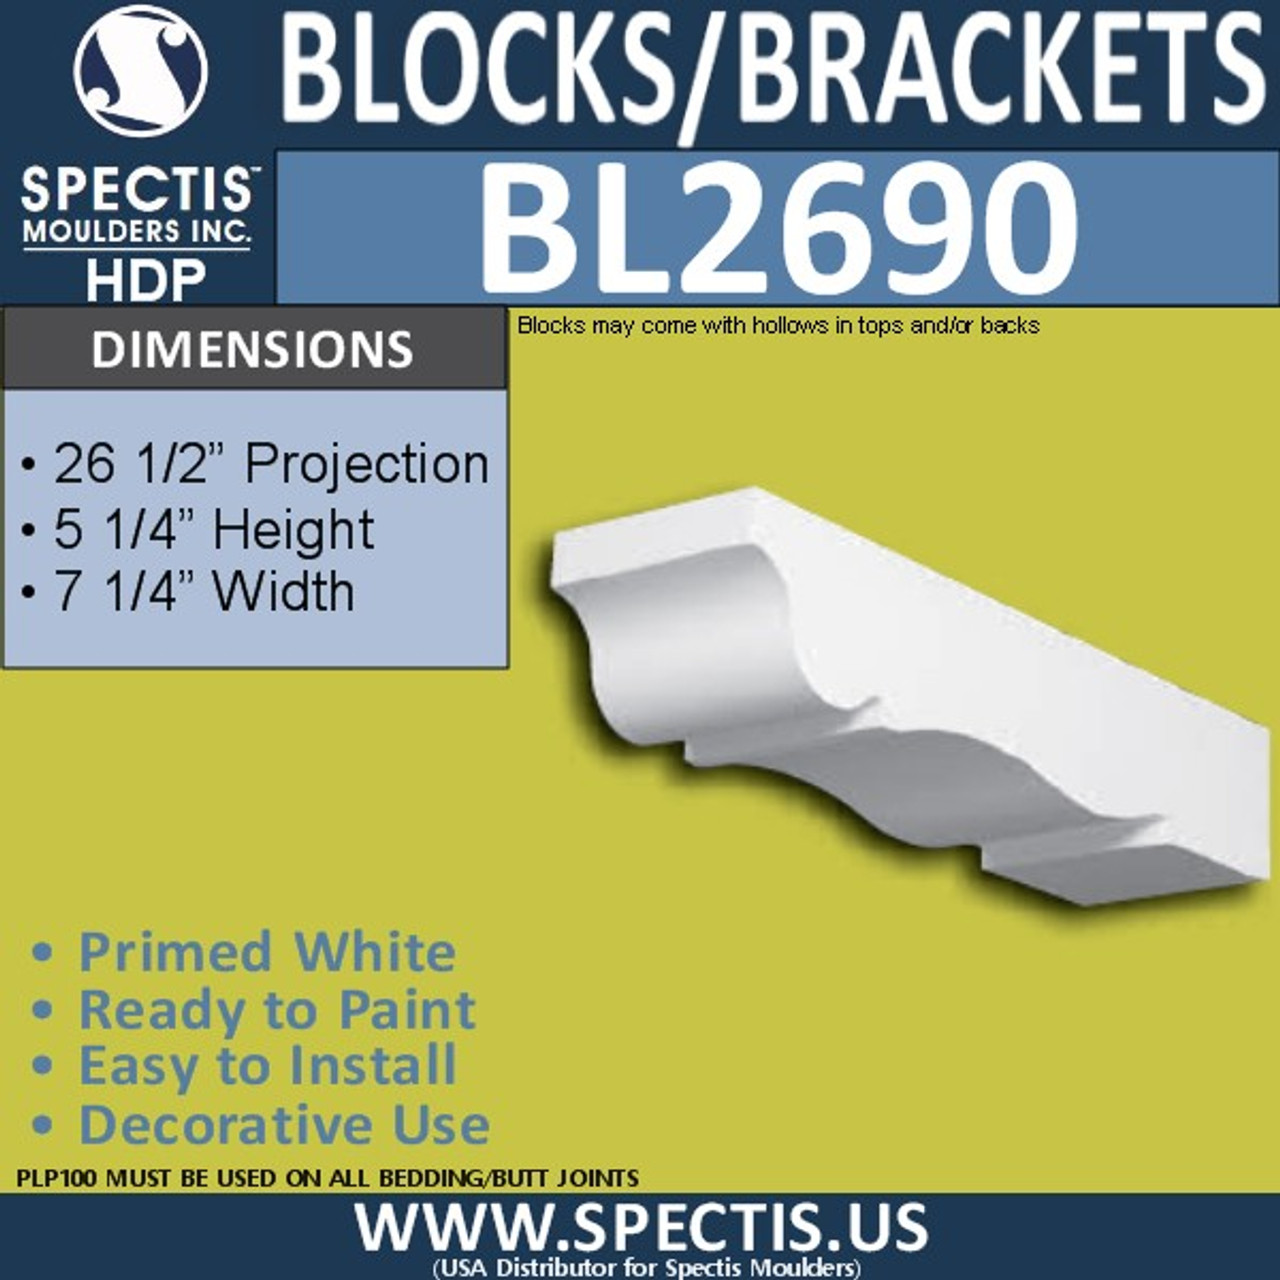 "BL2690 Eave Block or Bracket 7.25""W x 5.25""H x 26.5"" P"